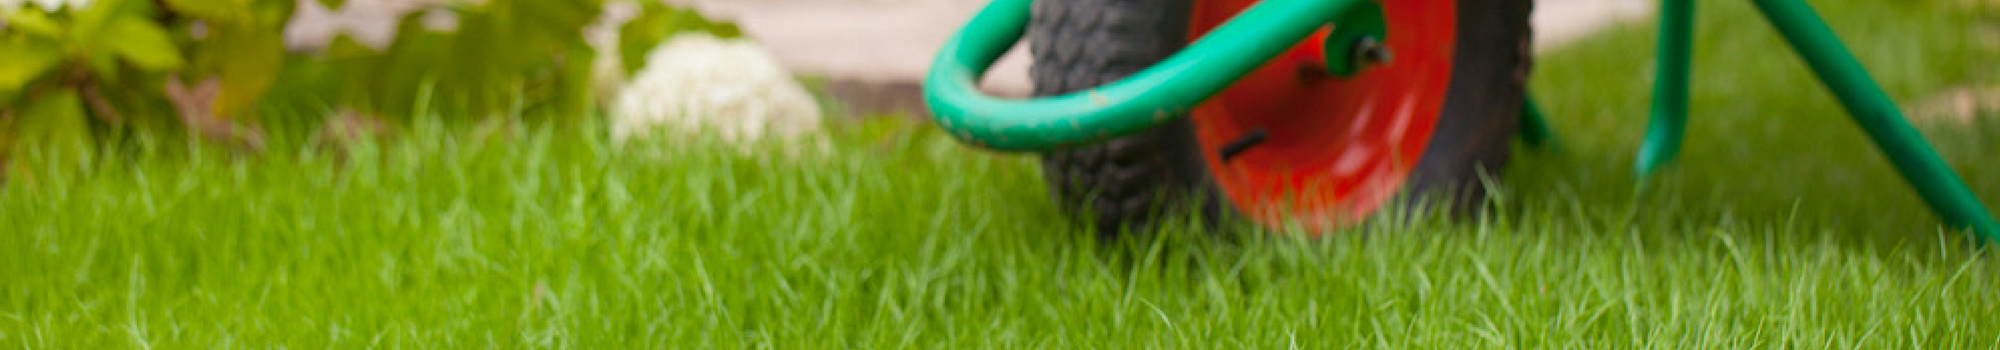 Ottawa | Lawn Care / Aeration Labourers Needed - Featured Image